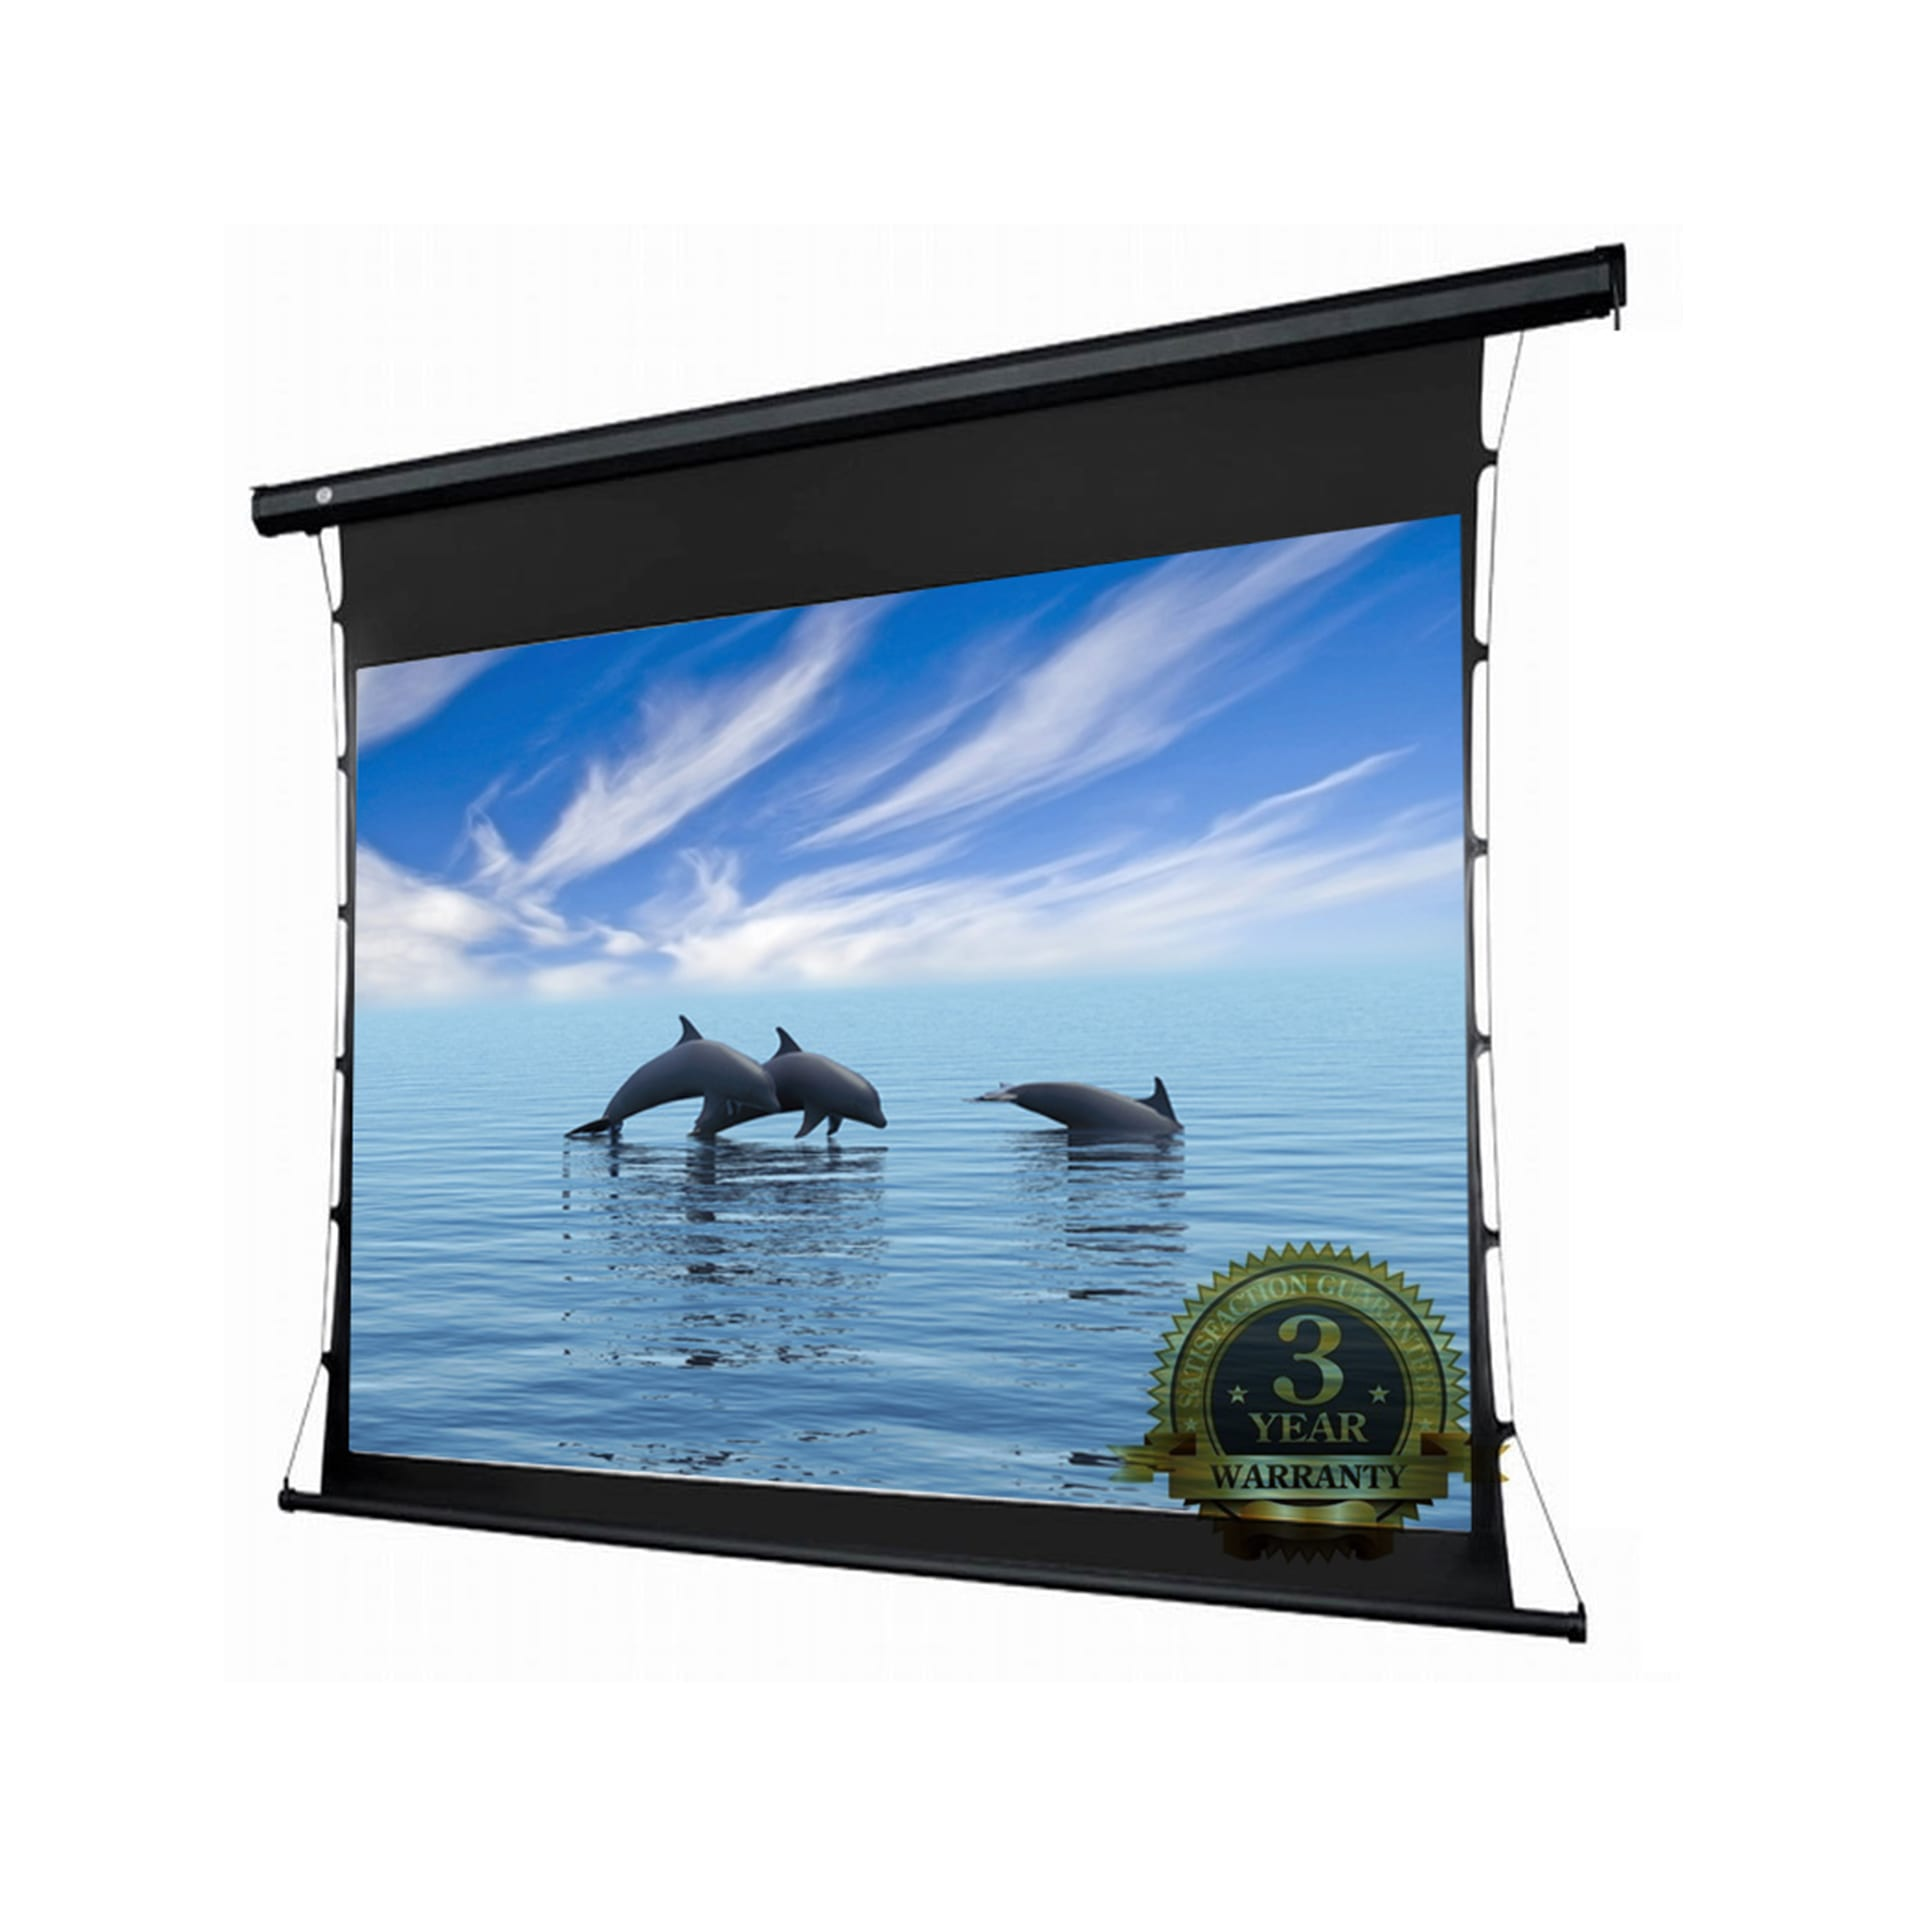 allcam 4K HD 3D compatible projector screen tab-tensioned electric motorized